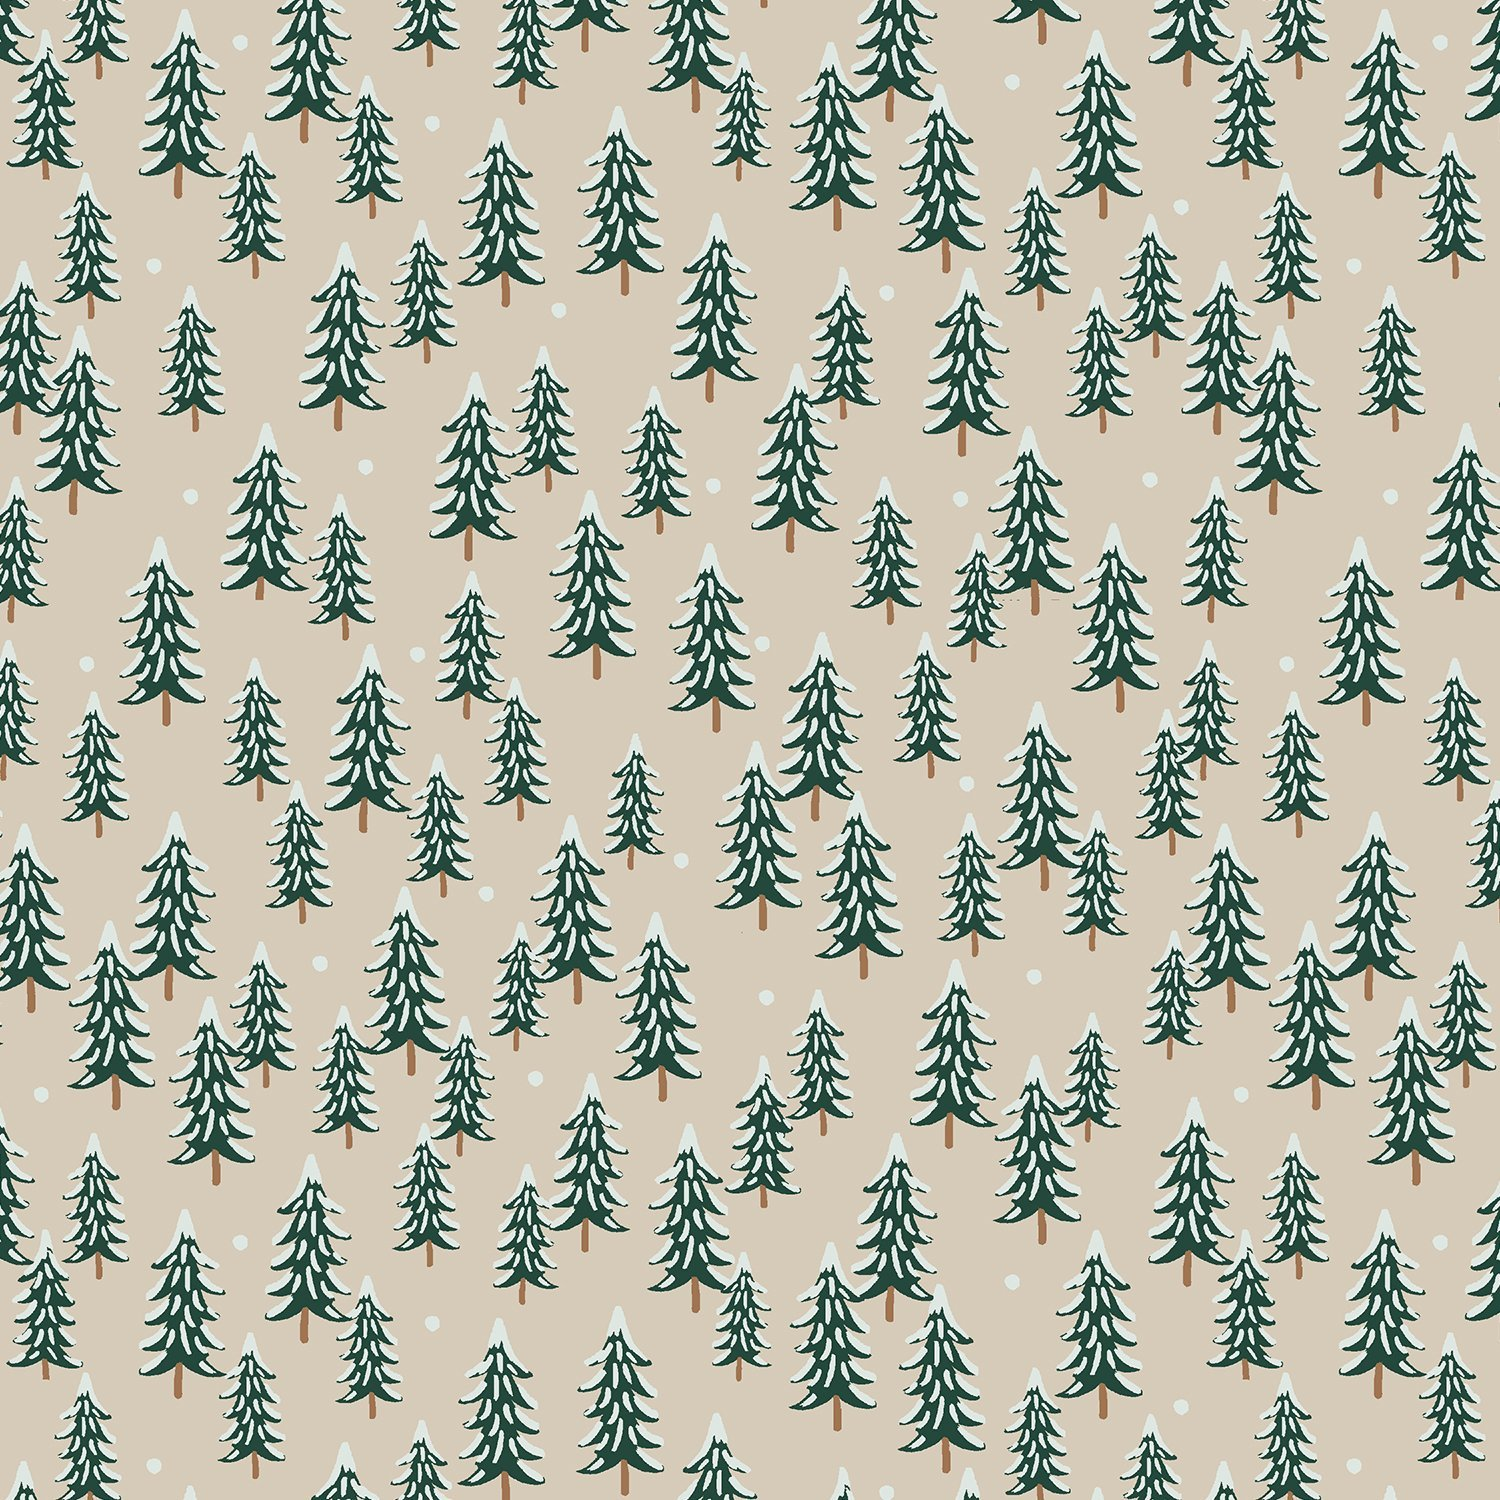 Holiday Classics - Trees on Linen by Rifle Paper Co for Cotton & Steel